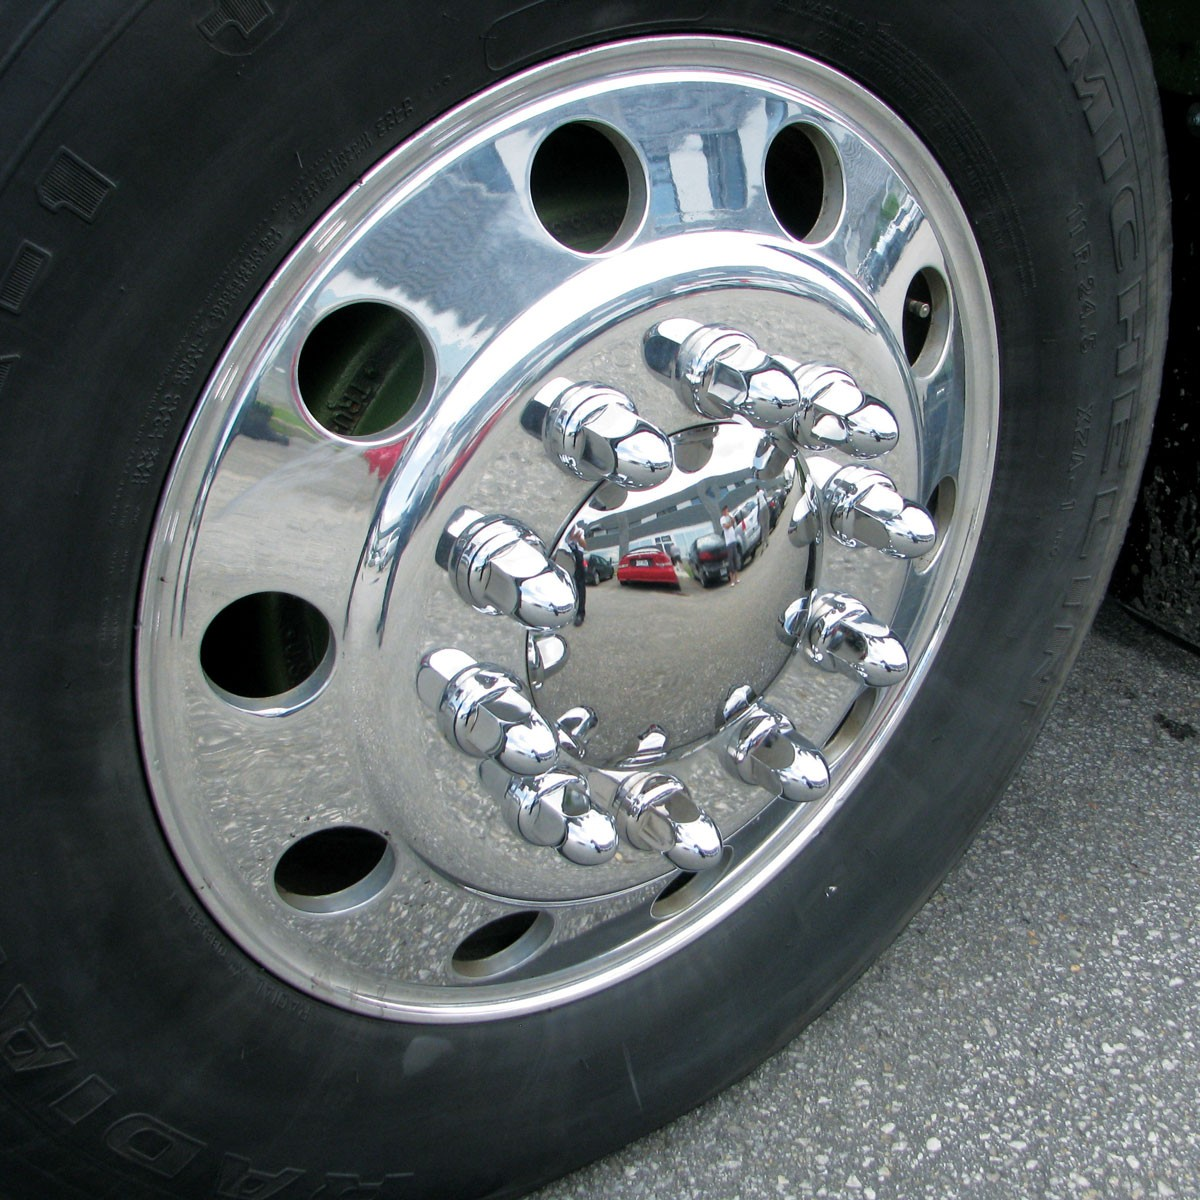 33mm Nut Cover w/ Flange - Chrome Plastic Nut Covers - Nut Covers - Wheel Accessories ...